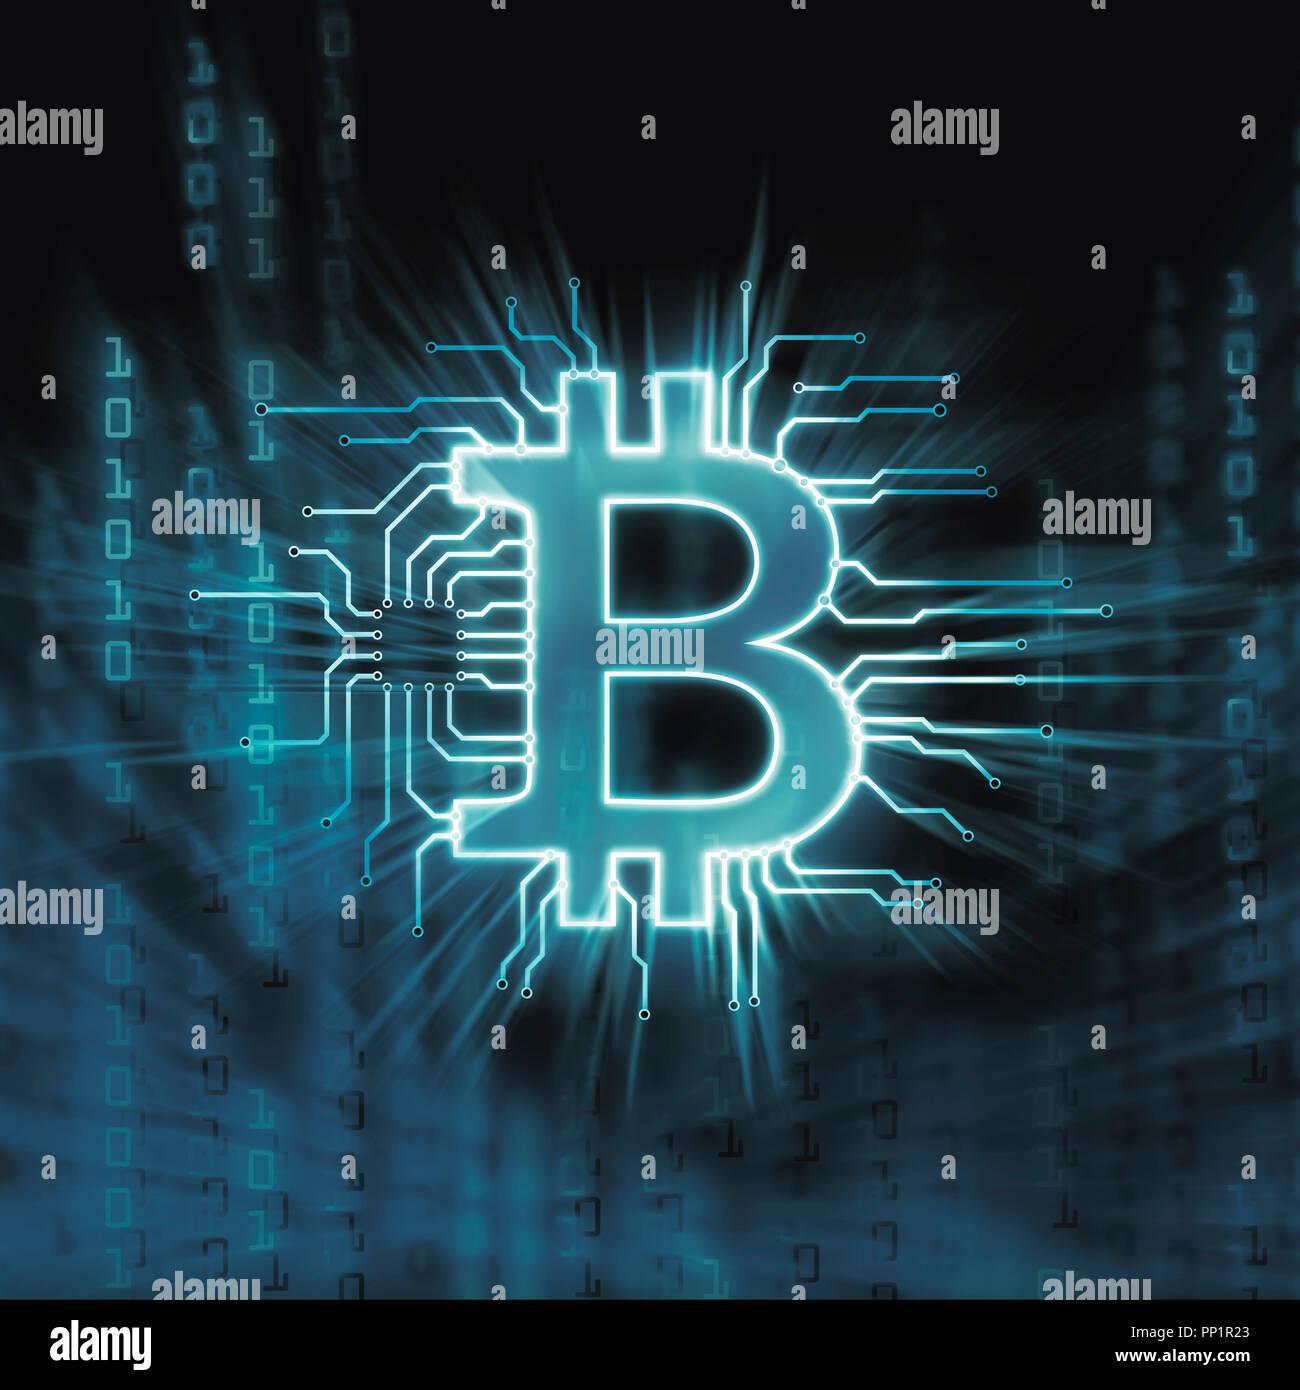 Bitcoin ₿ cryptocurrency, digital decentralized currency symbol, conceptual illustration of a bitcoin connected to a blockchain network. - Stock Image